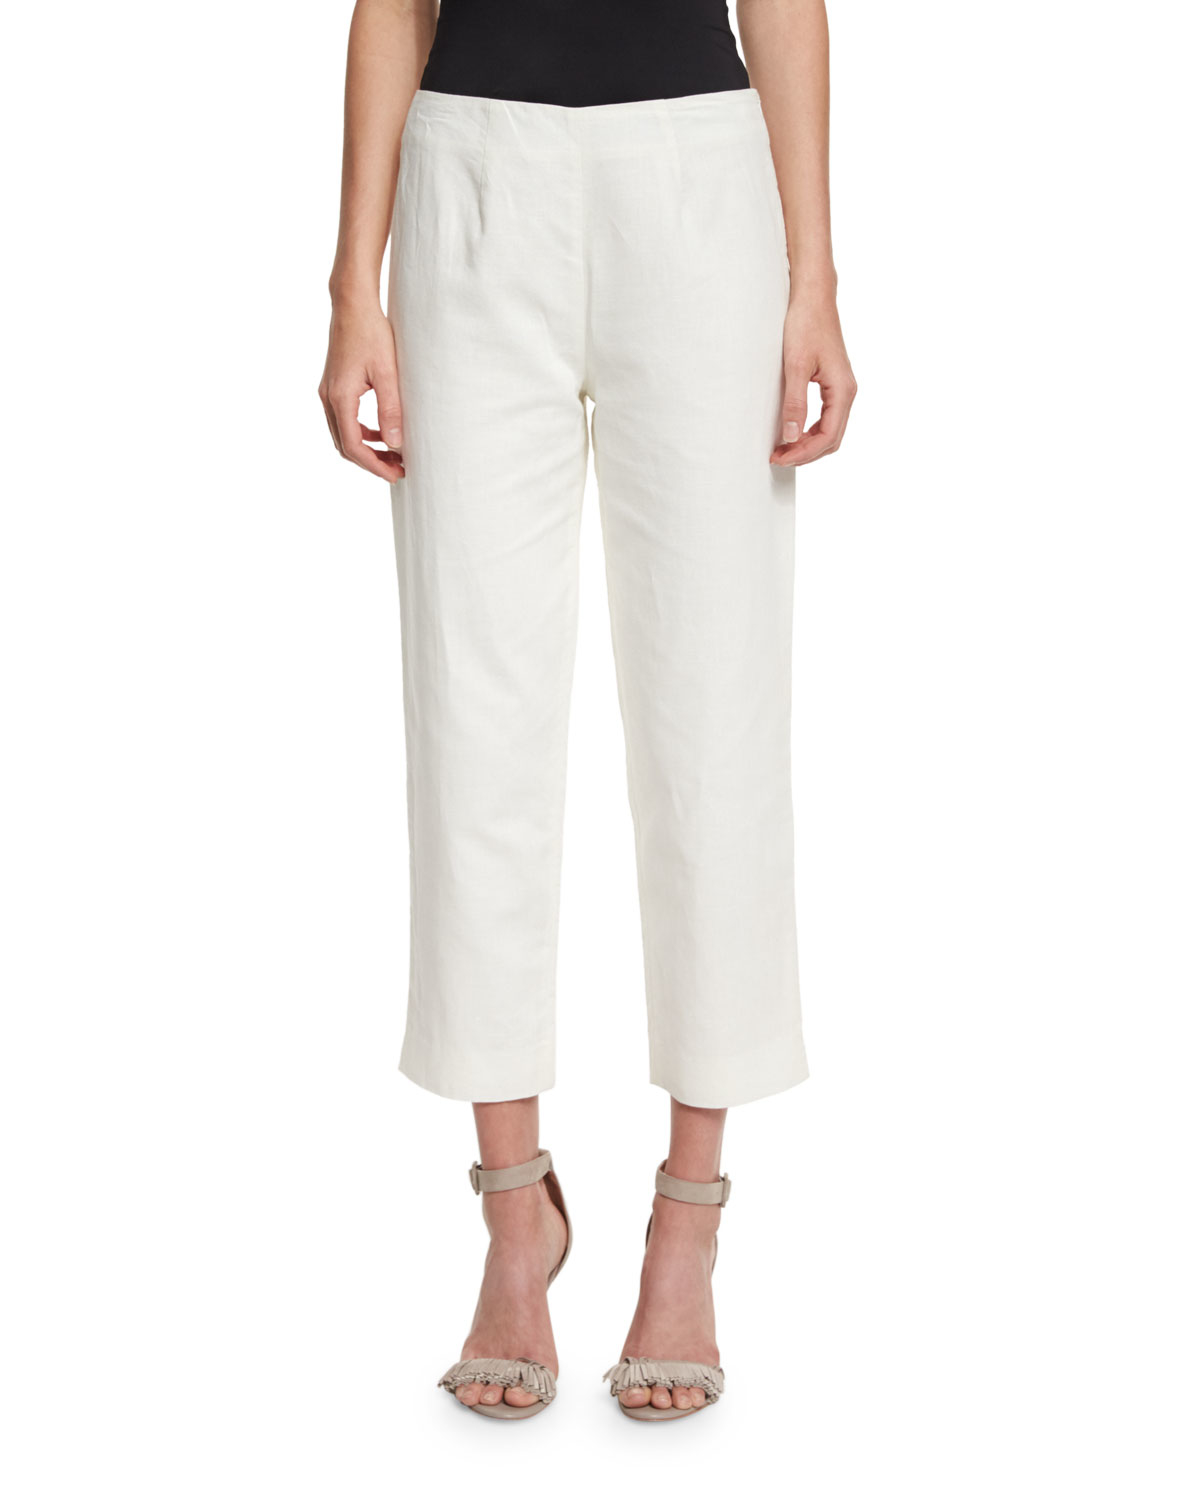 Shop white linen pants at Neiman Marcus, where you will find free shipping on the latest in fashion from top designers.